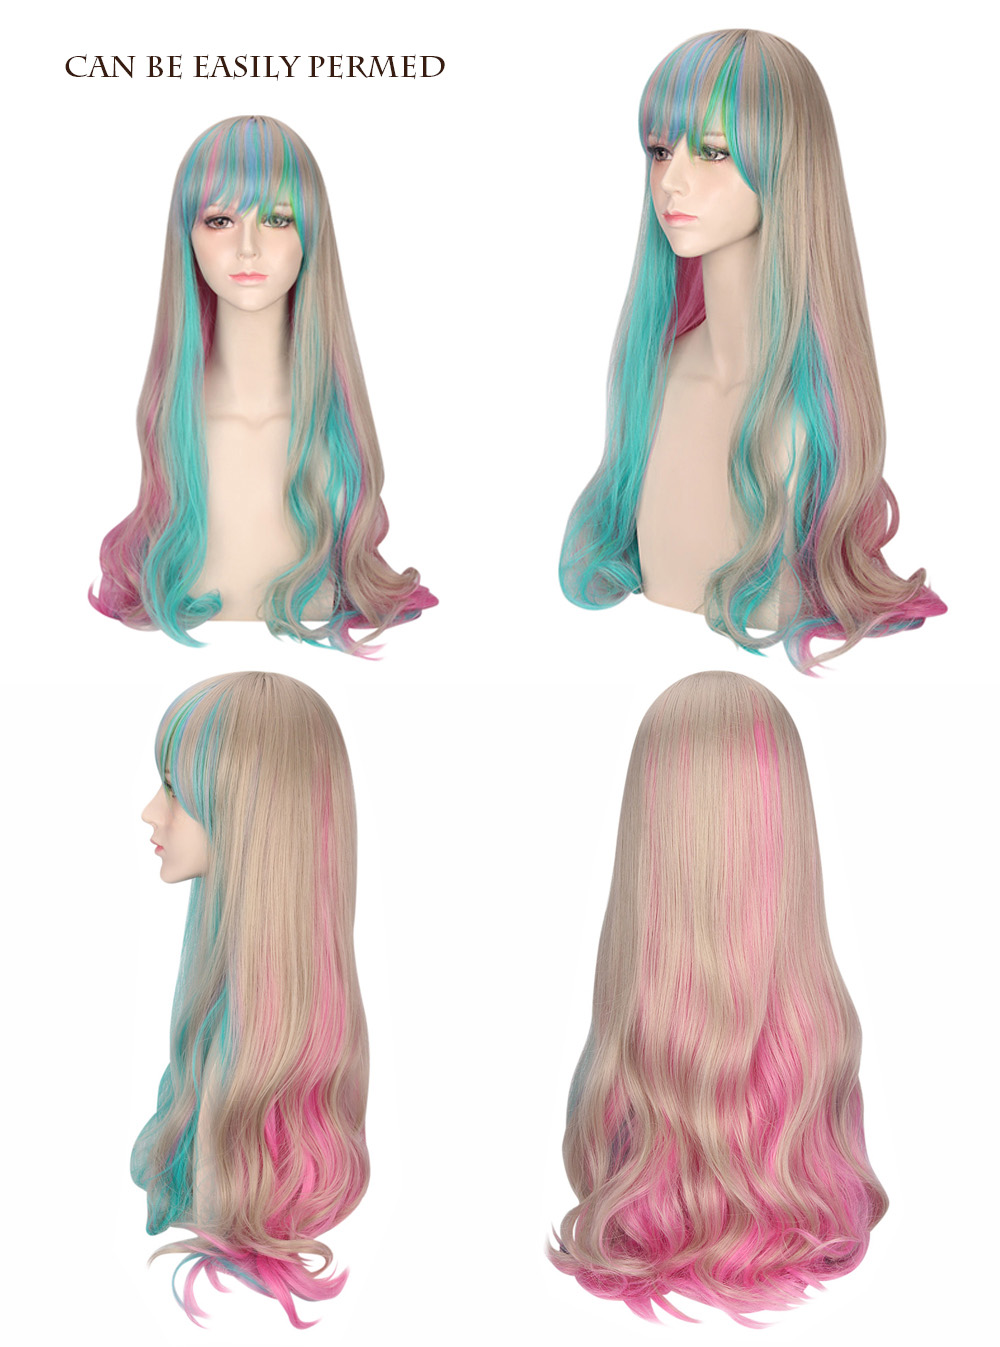 Piaoliujia Harajuku Long Full Bangs Colorful Synthetic Wig for Women